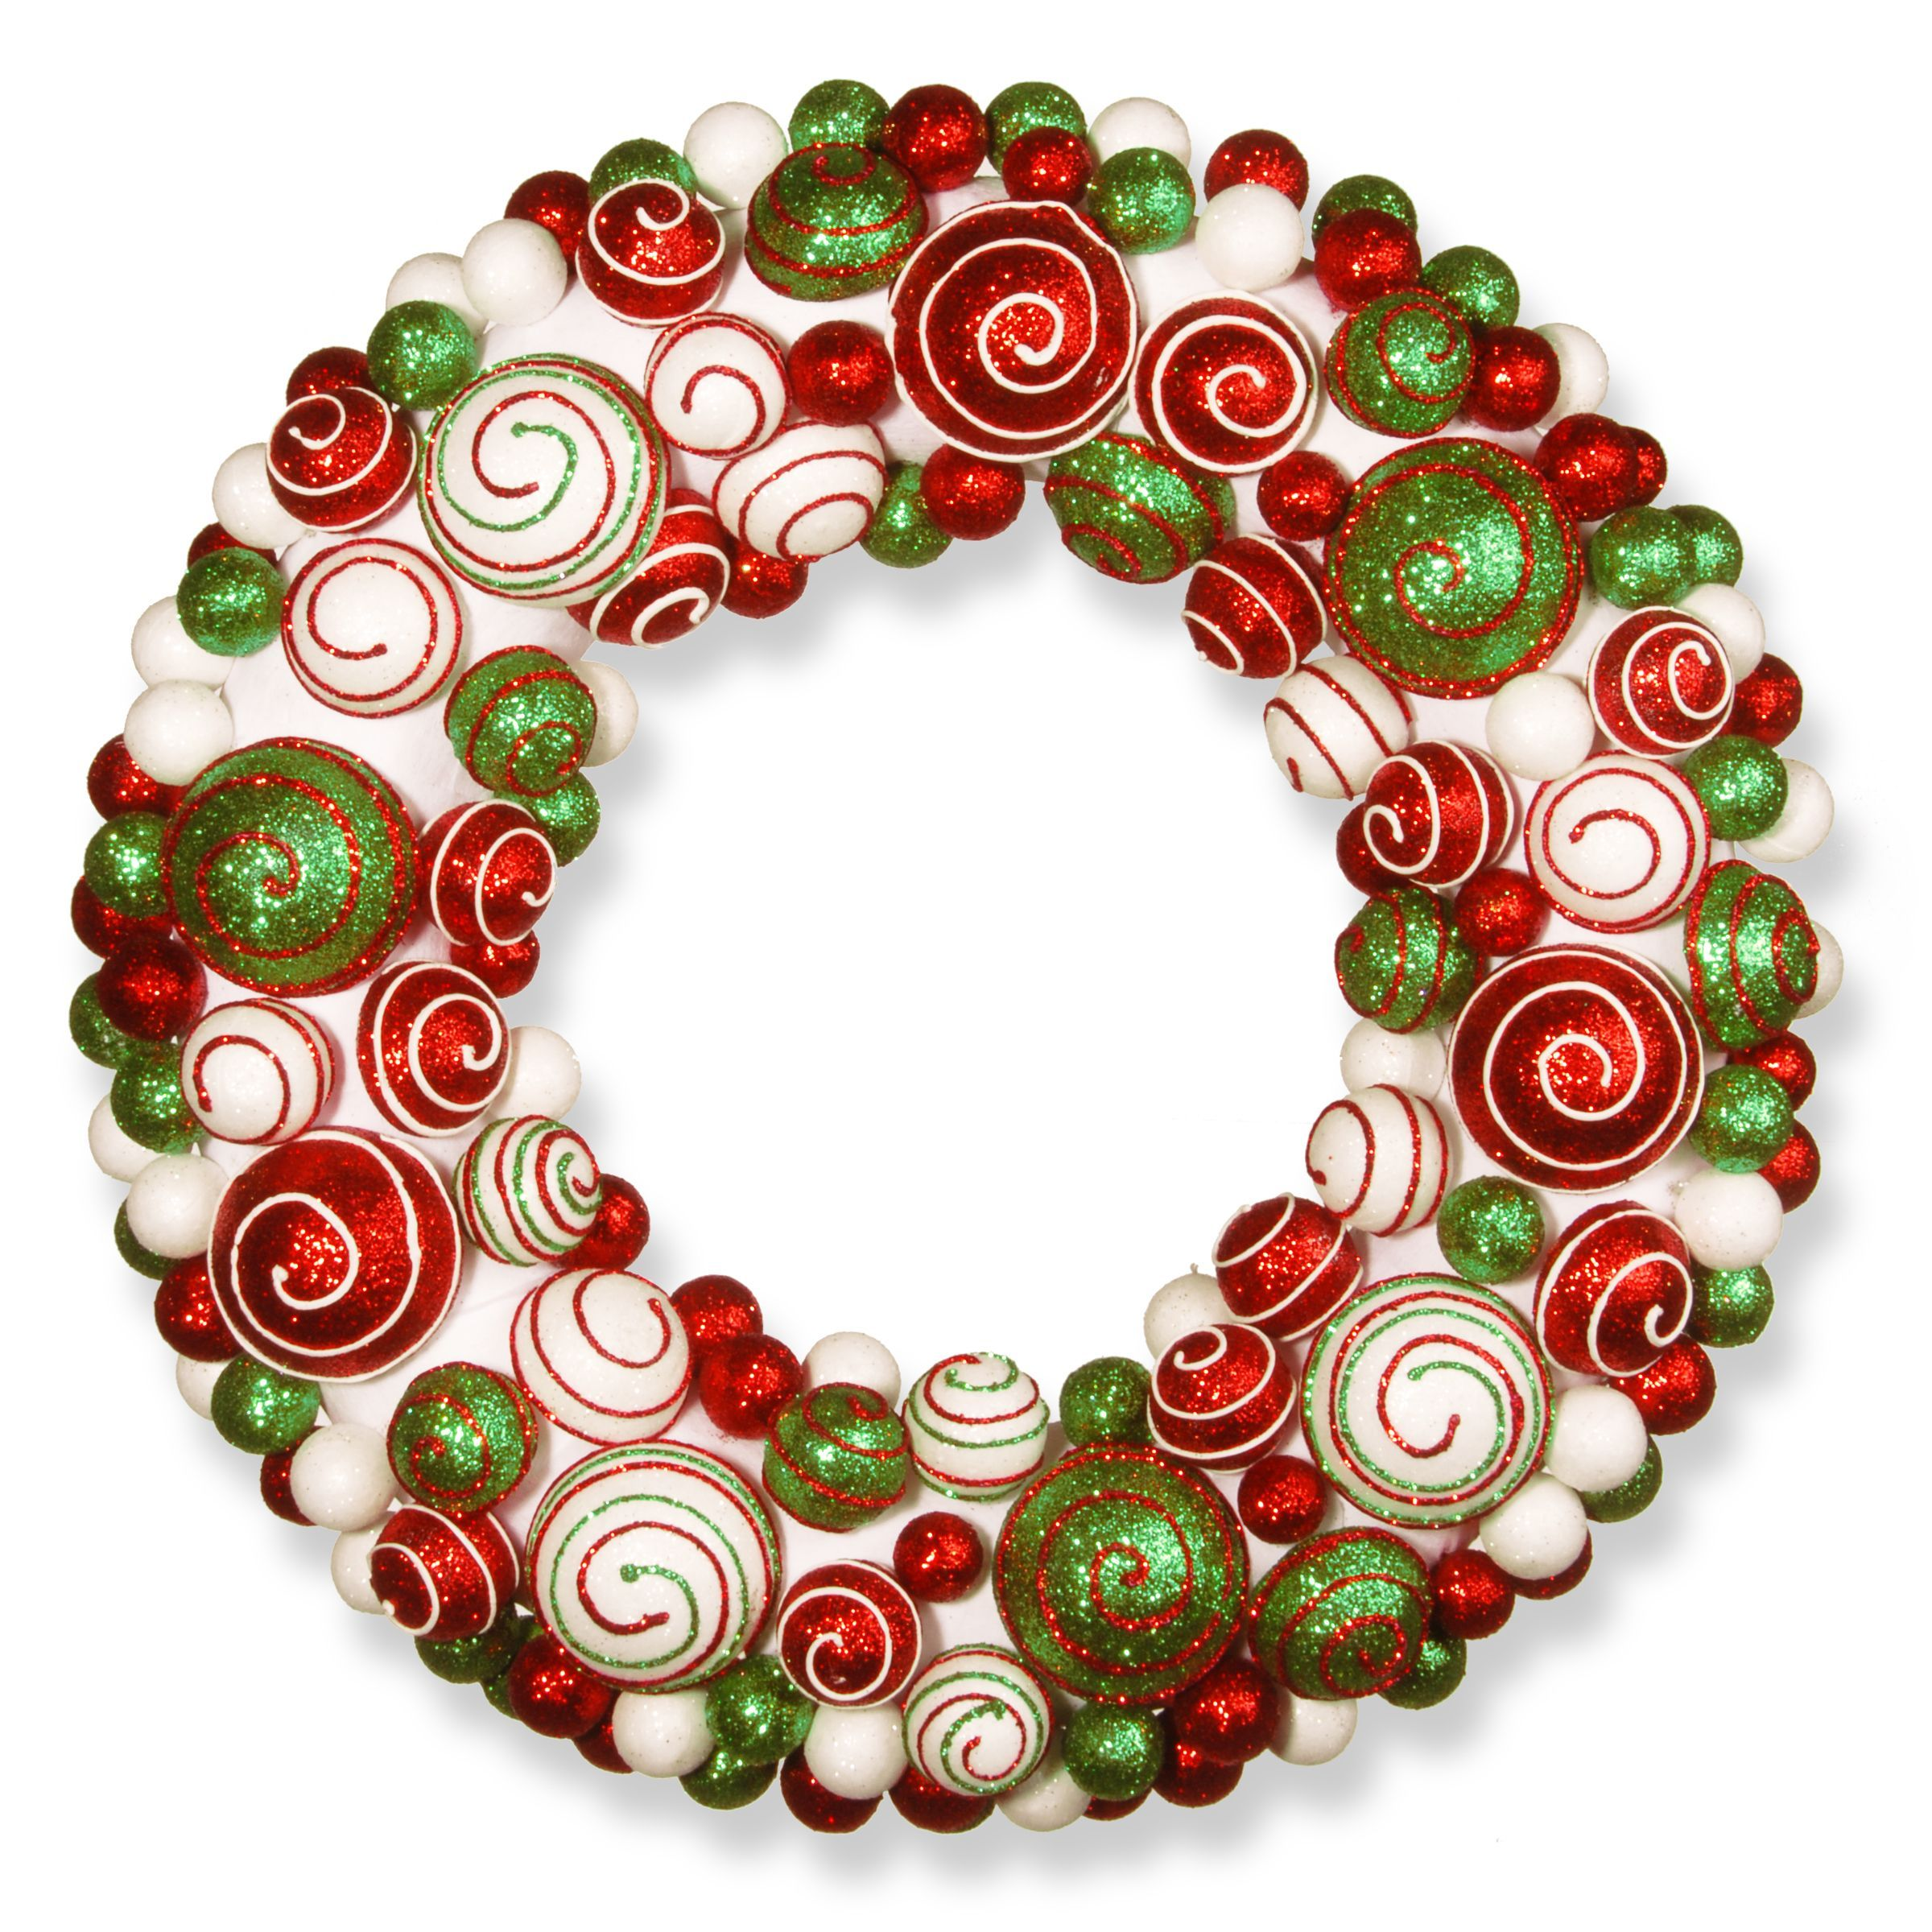 National Tree Company 20-inch Ornament Wreath (RED, White, Green ...